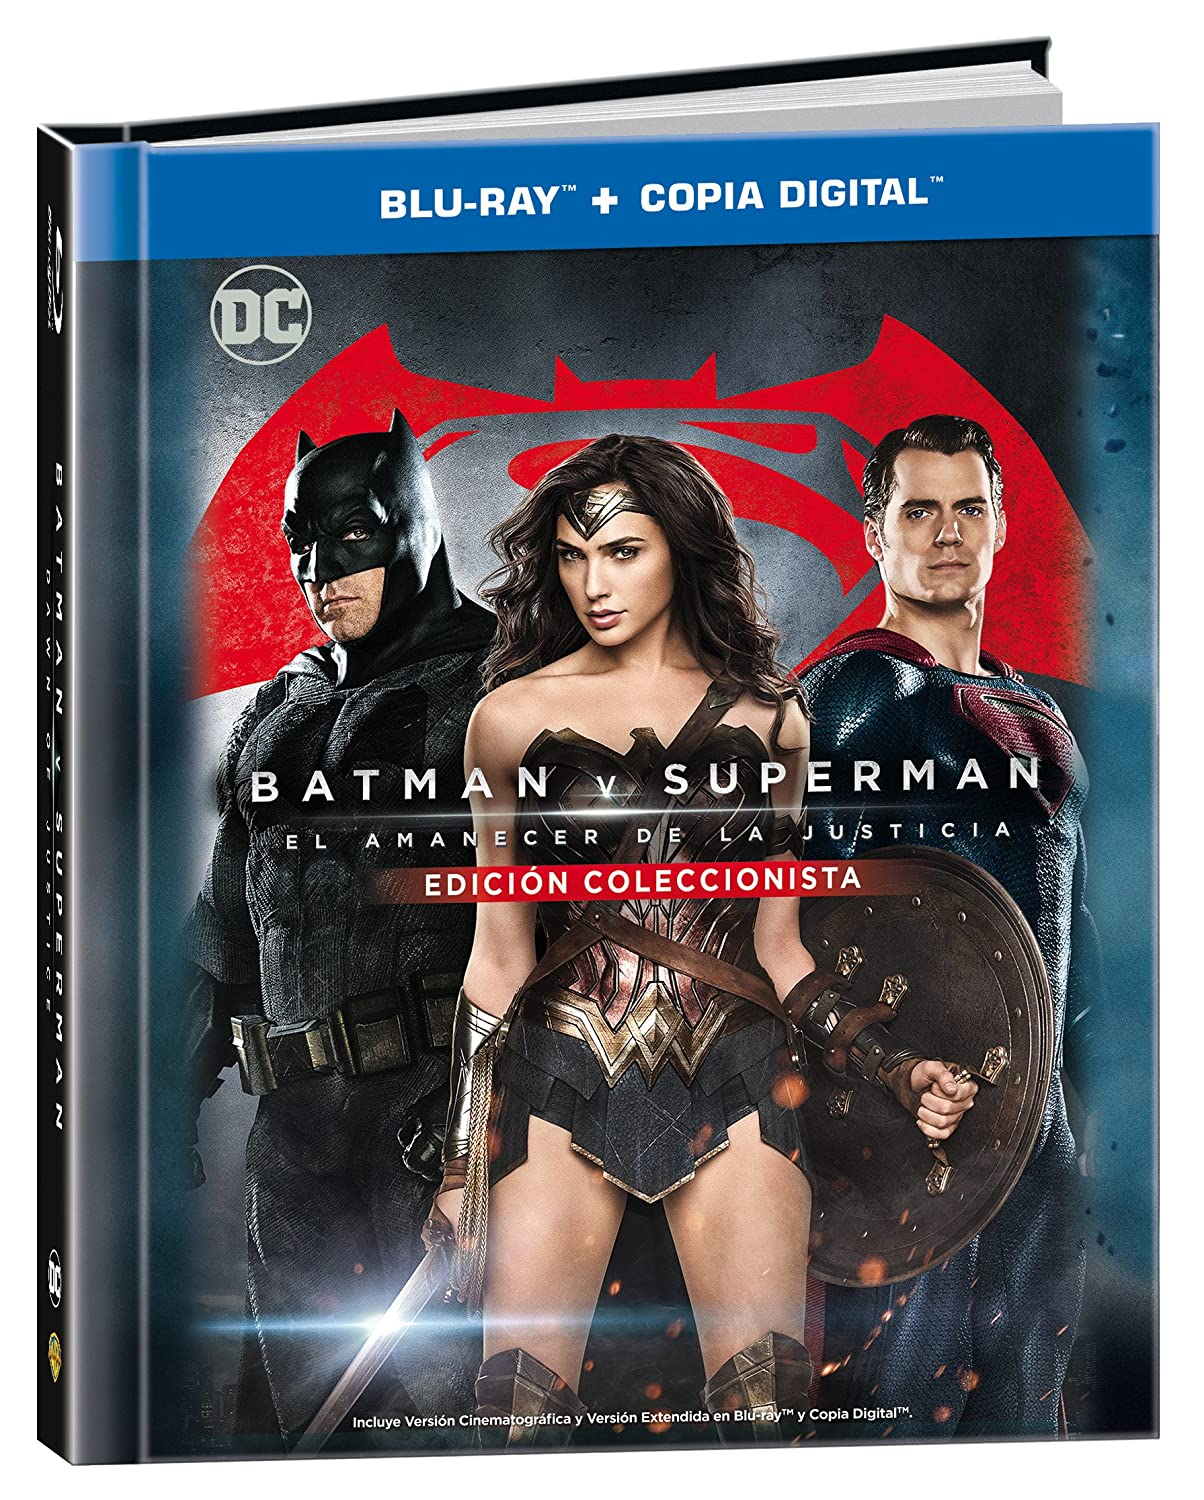 Batman V Superman: El Amanecer De La JusticiaBlu-Ray + Copia DigitalDigibook [Blu-ray]